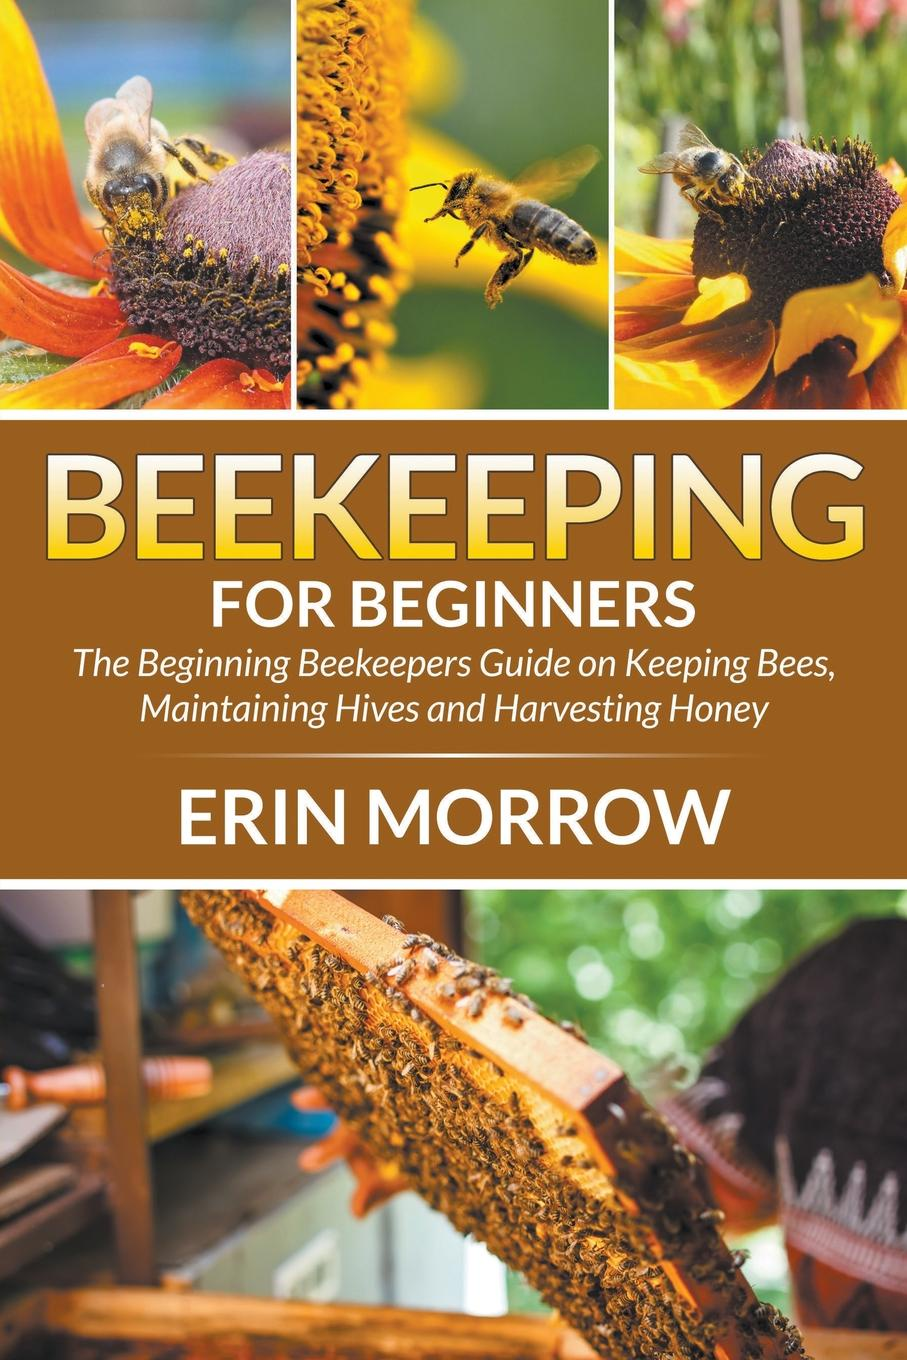 Erin Morrow Beekeeping For Beginners. The Beginning Beekeepers Guide on Keeping Bees, Maintaining Hives and Harvesting Honey george s fichter bees wasps and ants